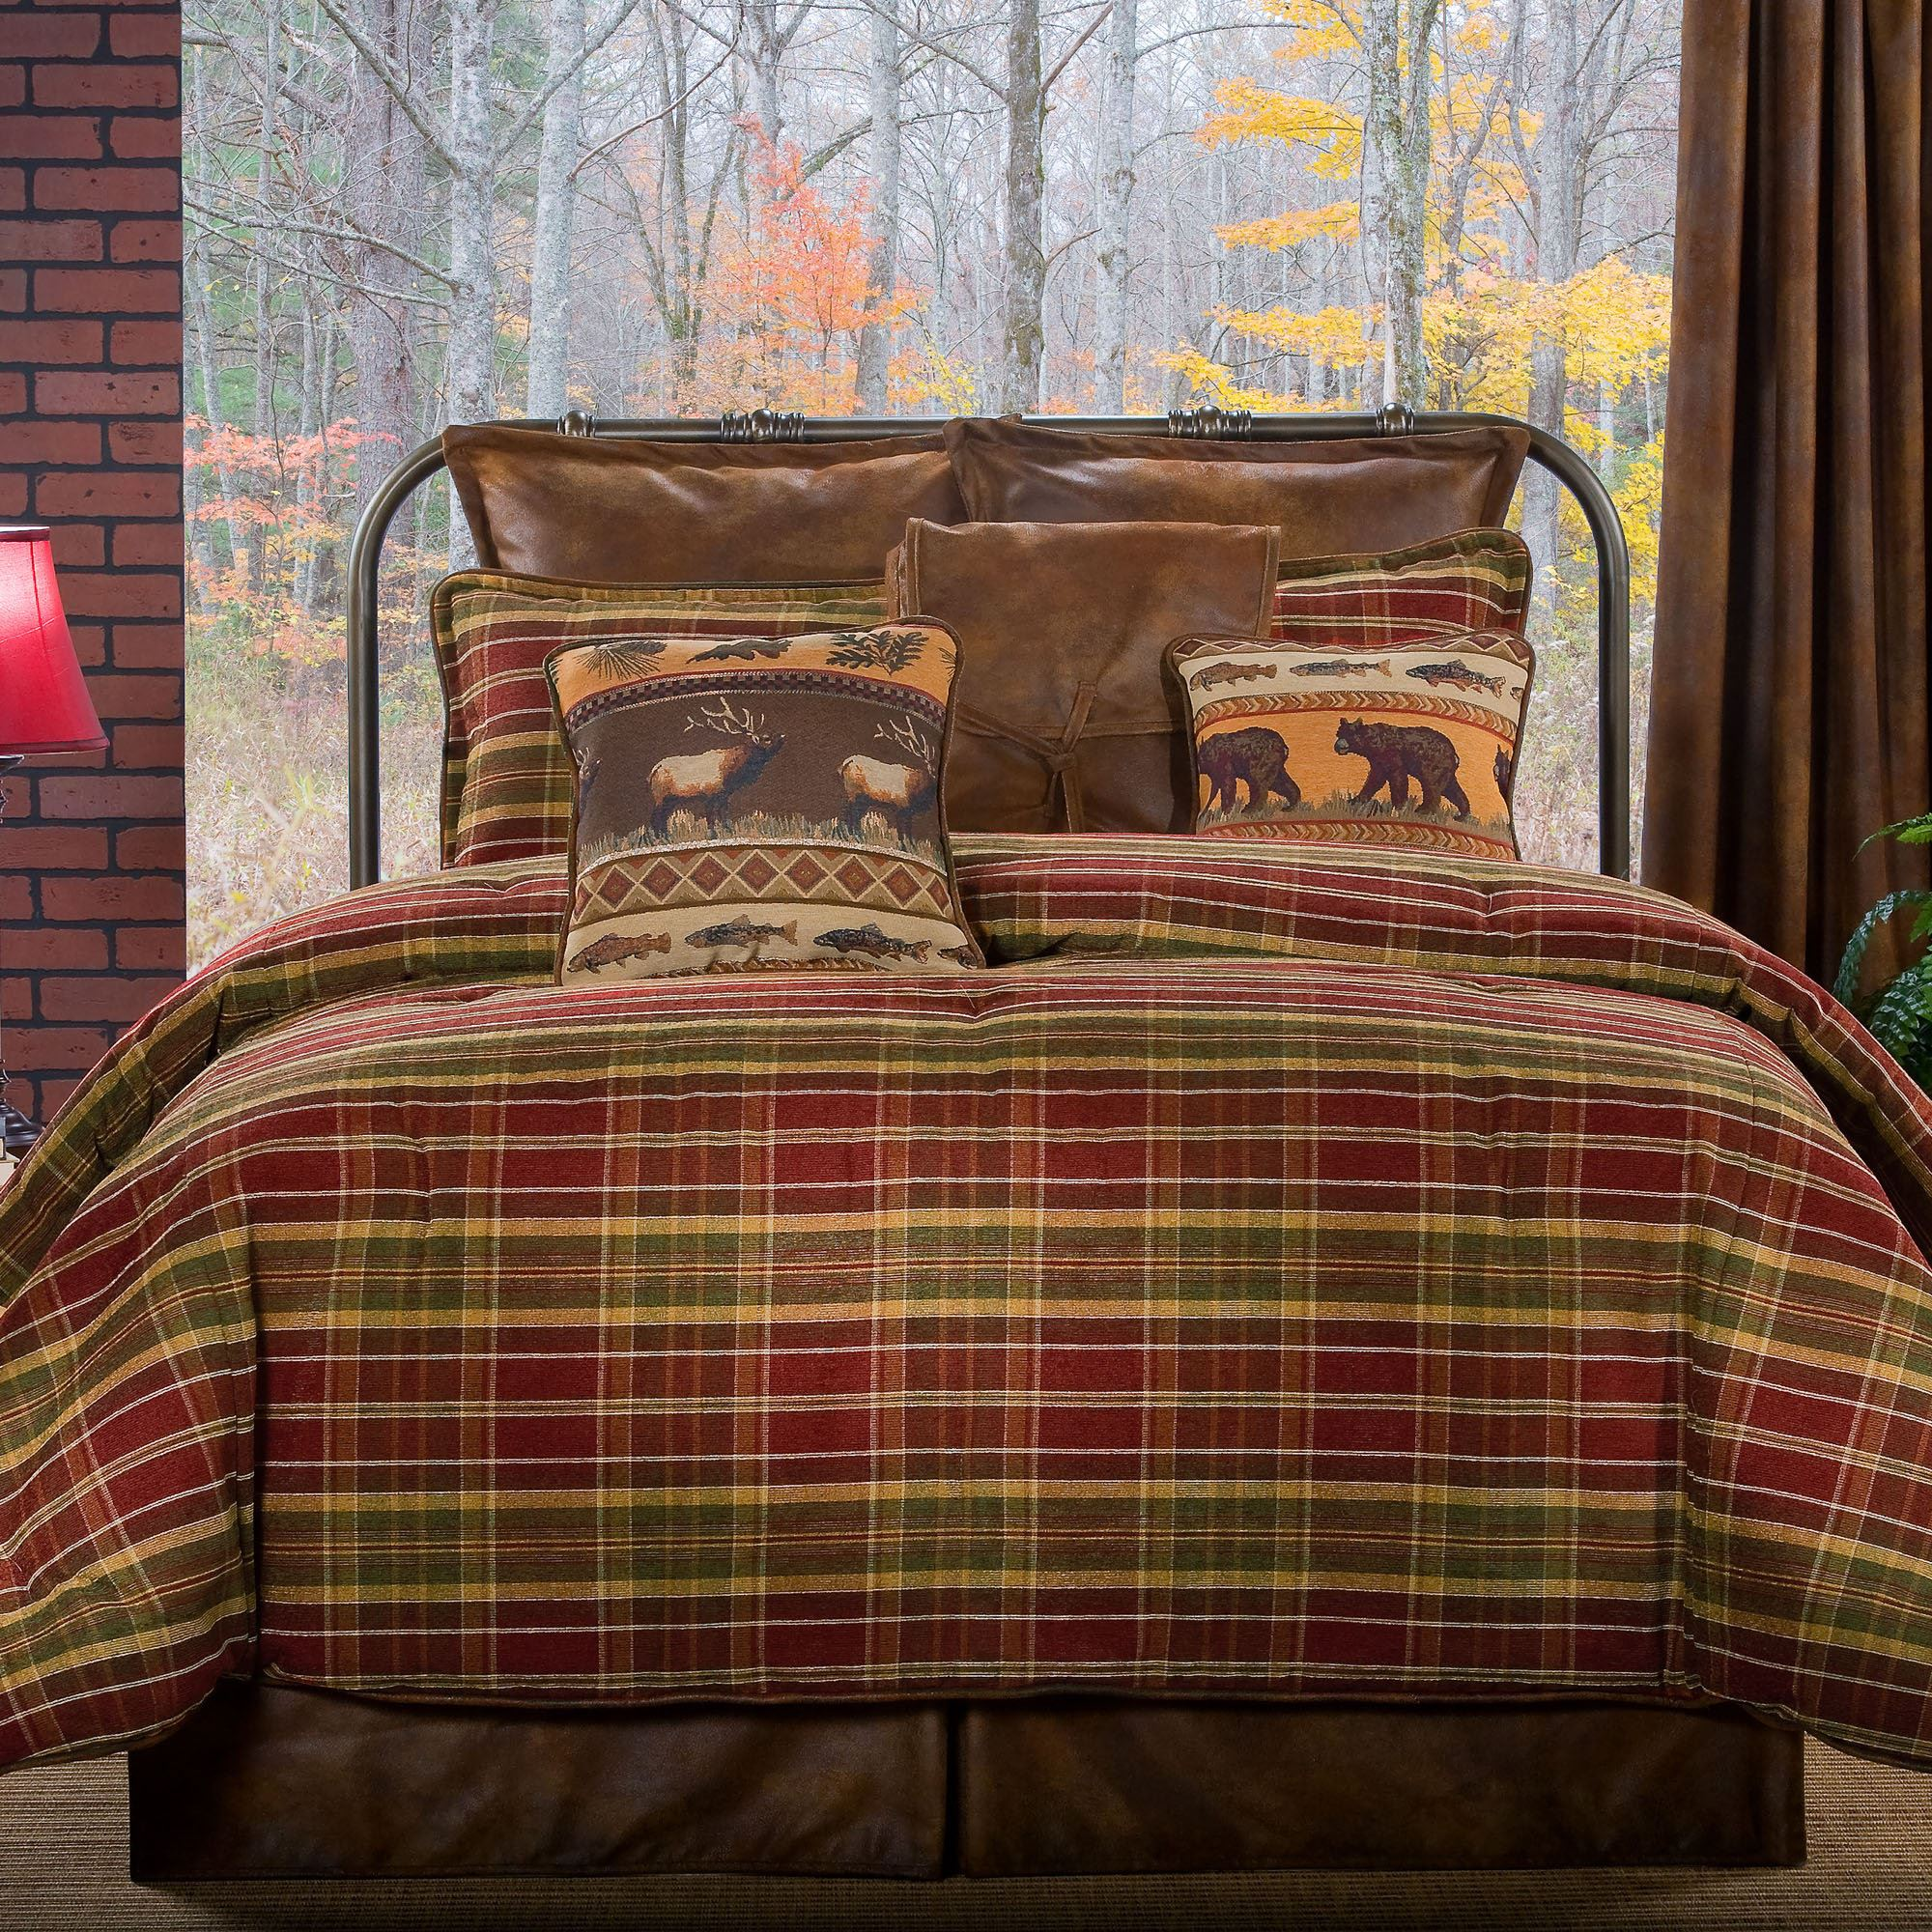 Montana Morning Rustic Plaid Comforter Bedding